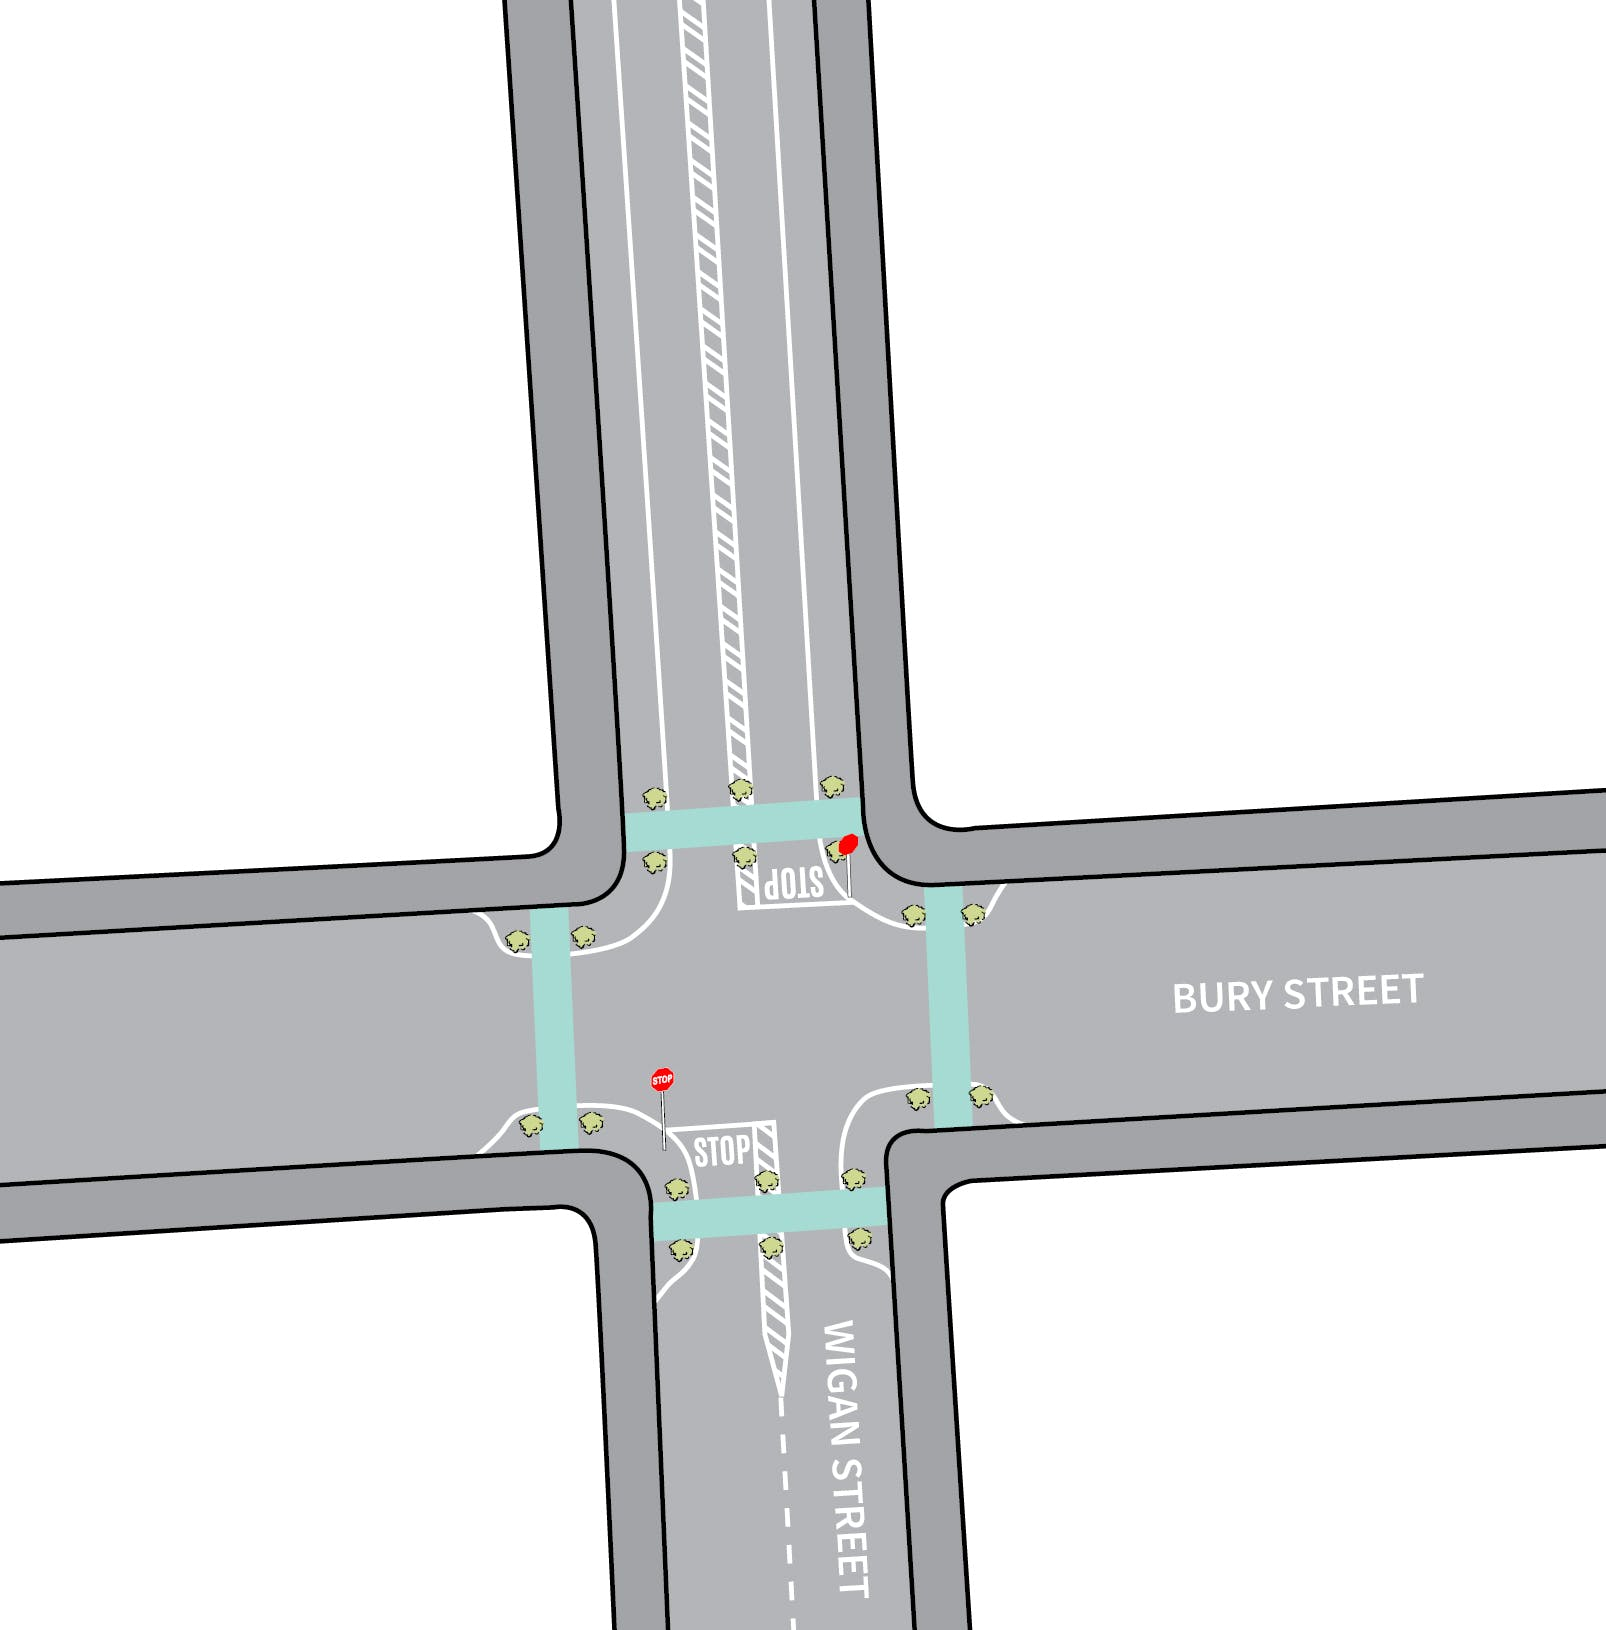 Intersection Priority Changes